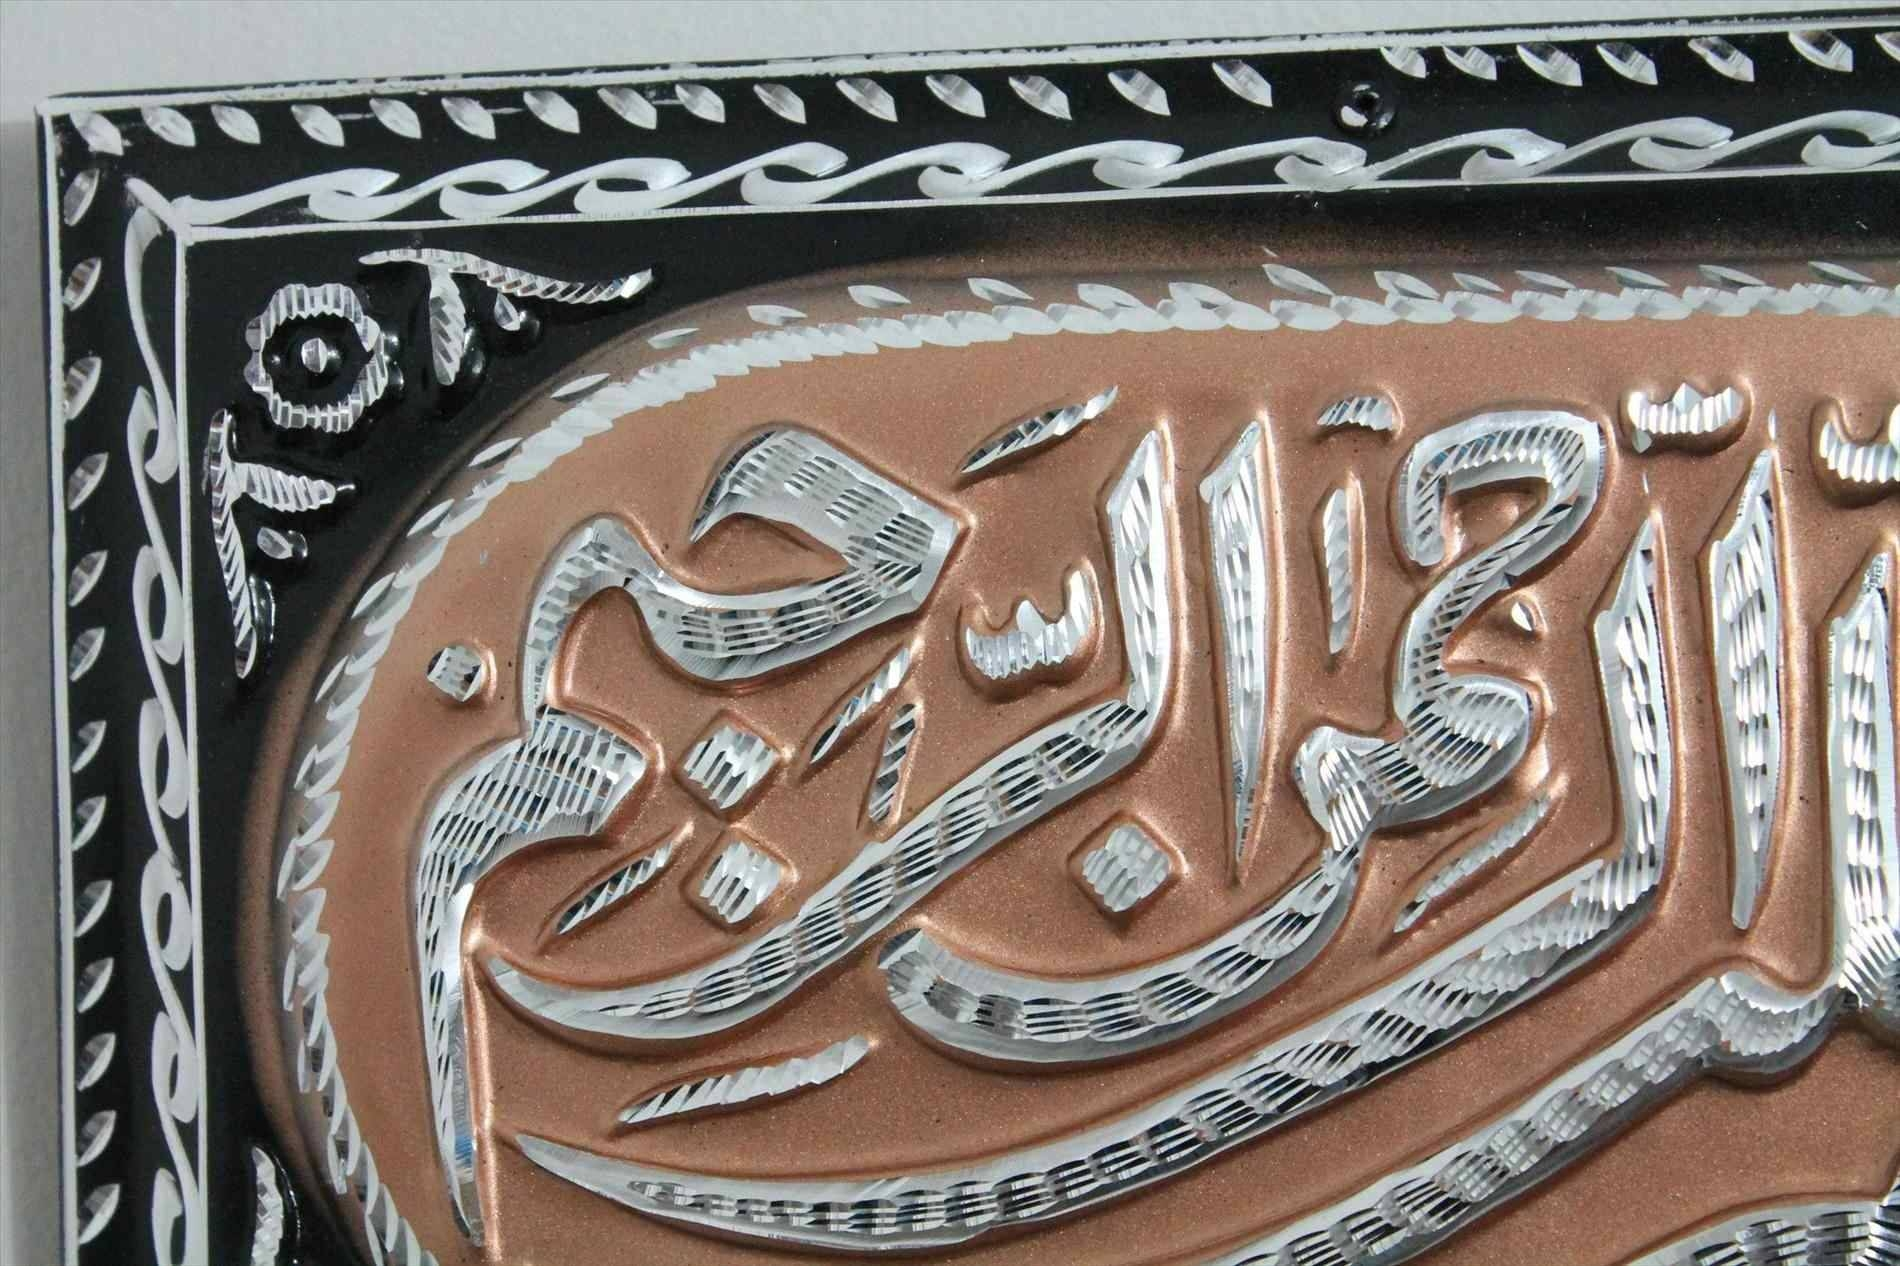 Swt And Muhammad Islamic Islamic Metal Wall Art Art On Metal Hand In Most Recent Islamic Metal Wall Art (View 16 of 20)